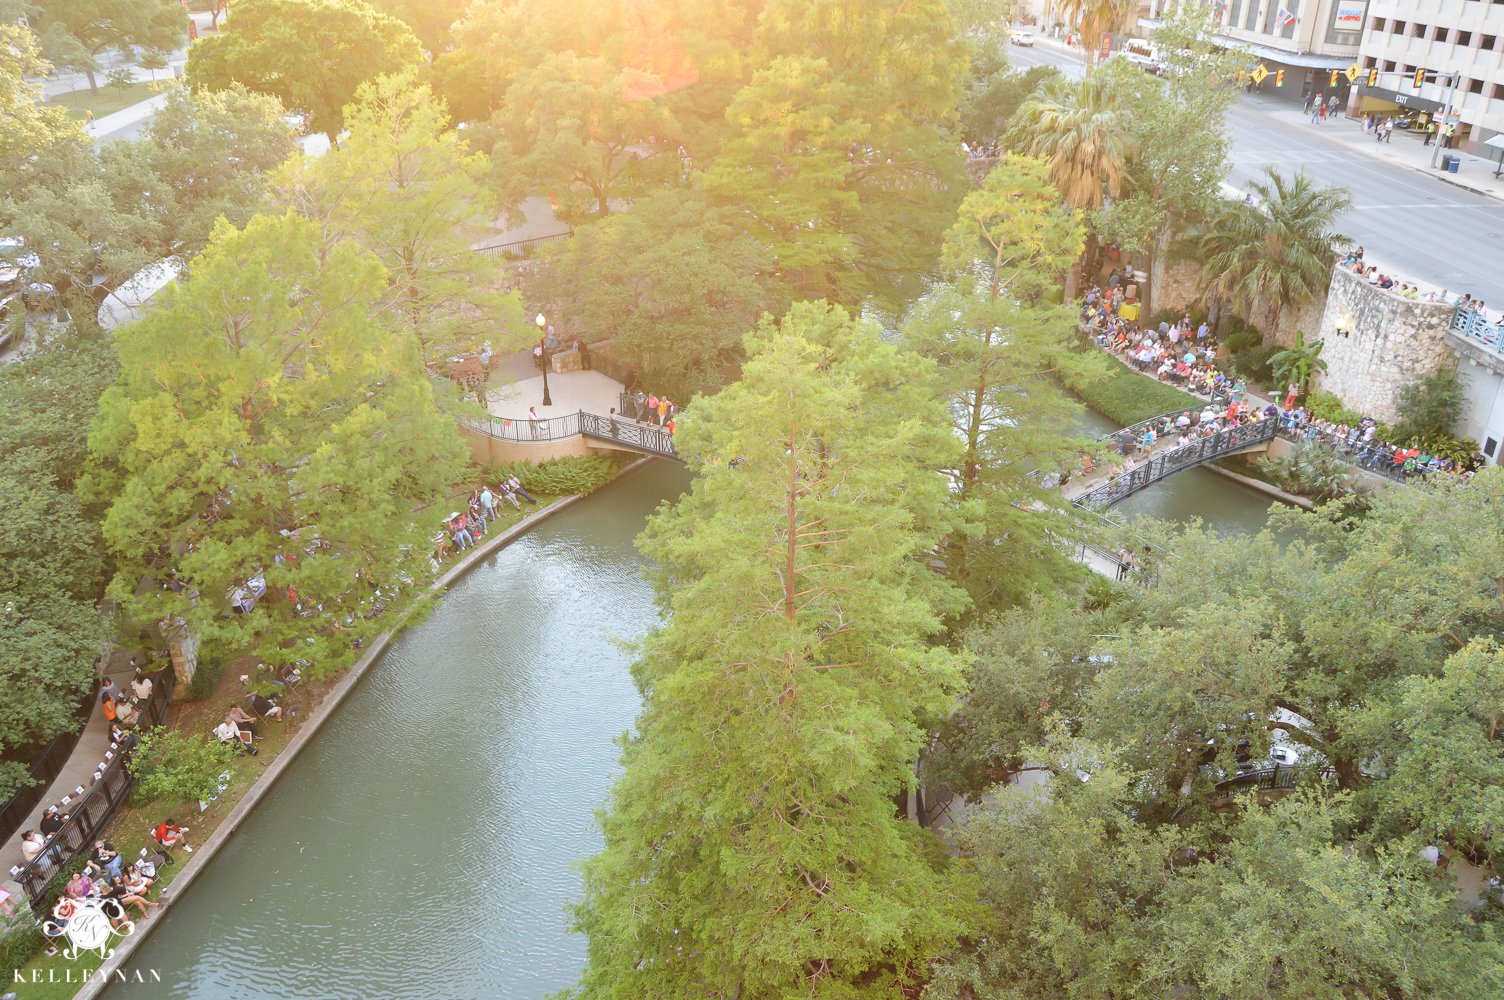 Texas Trip and San Antonio Fiesta Week-river float parade